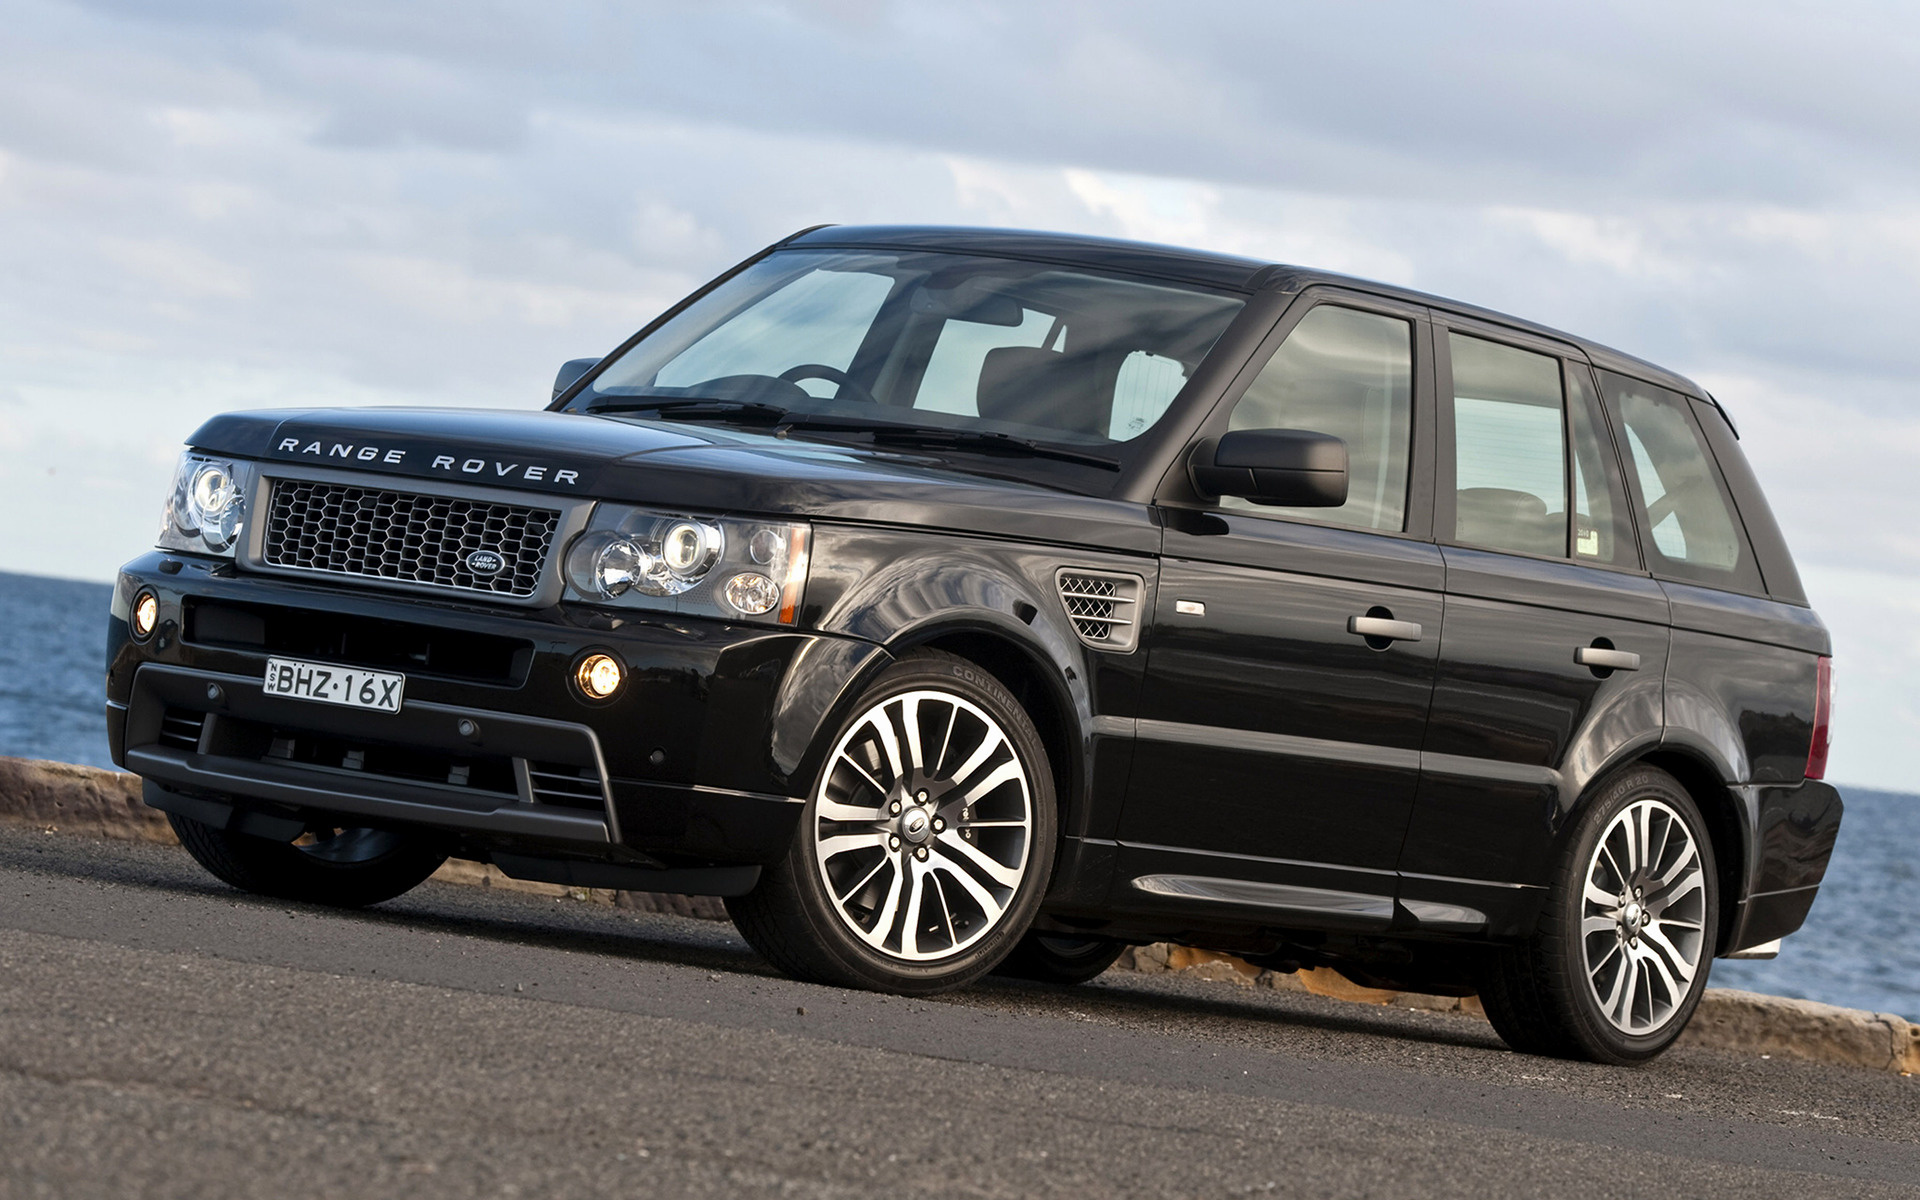 Range Rover Sport Stormer 2009 AU Wallpapers and HD Car